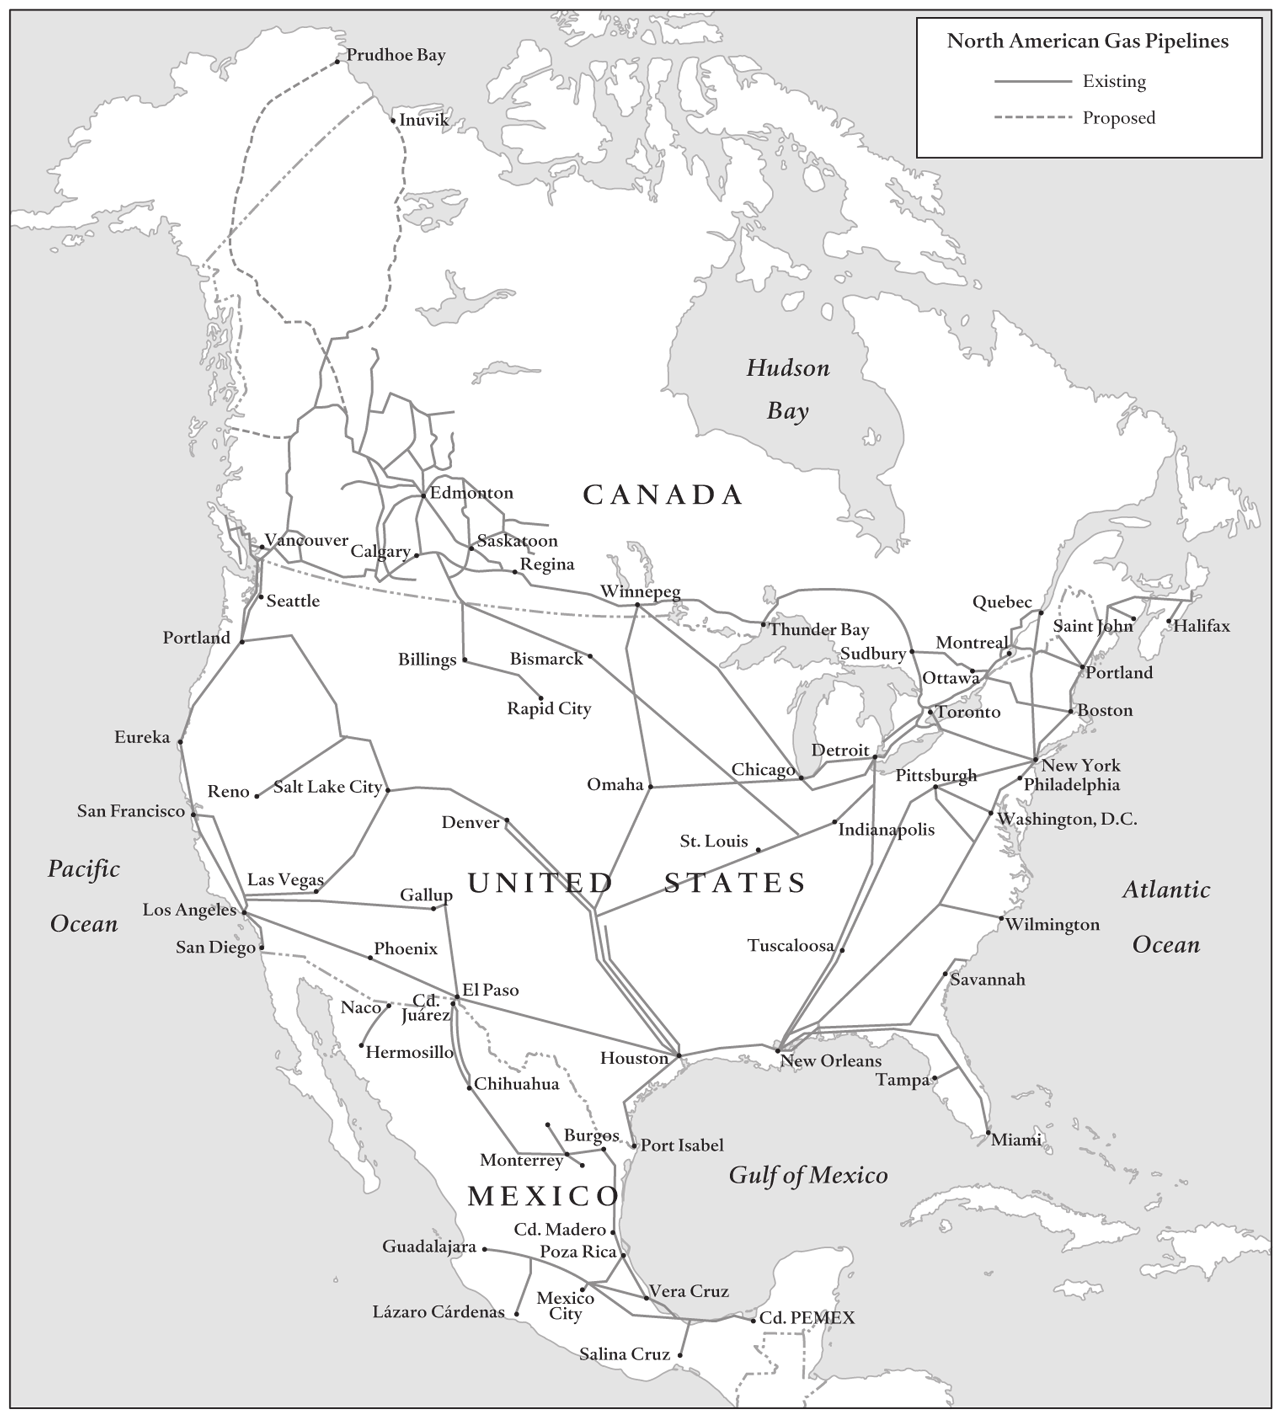 North American Energy Interdependence 27 Figure 8: North American GAS Pipelines Sources: Canadian Energy Pipeline Association; Pemex; U.S. EIA. sands to U.S. refineries, the U.S. government has repeatedly delayed the final decision on the pipeline.